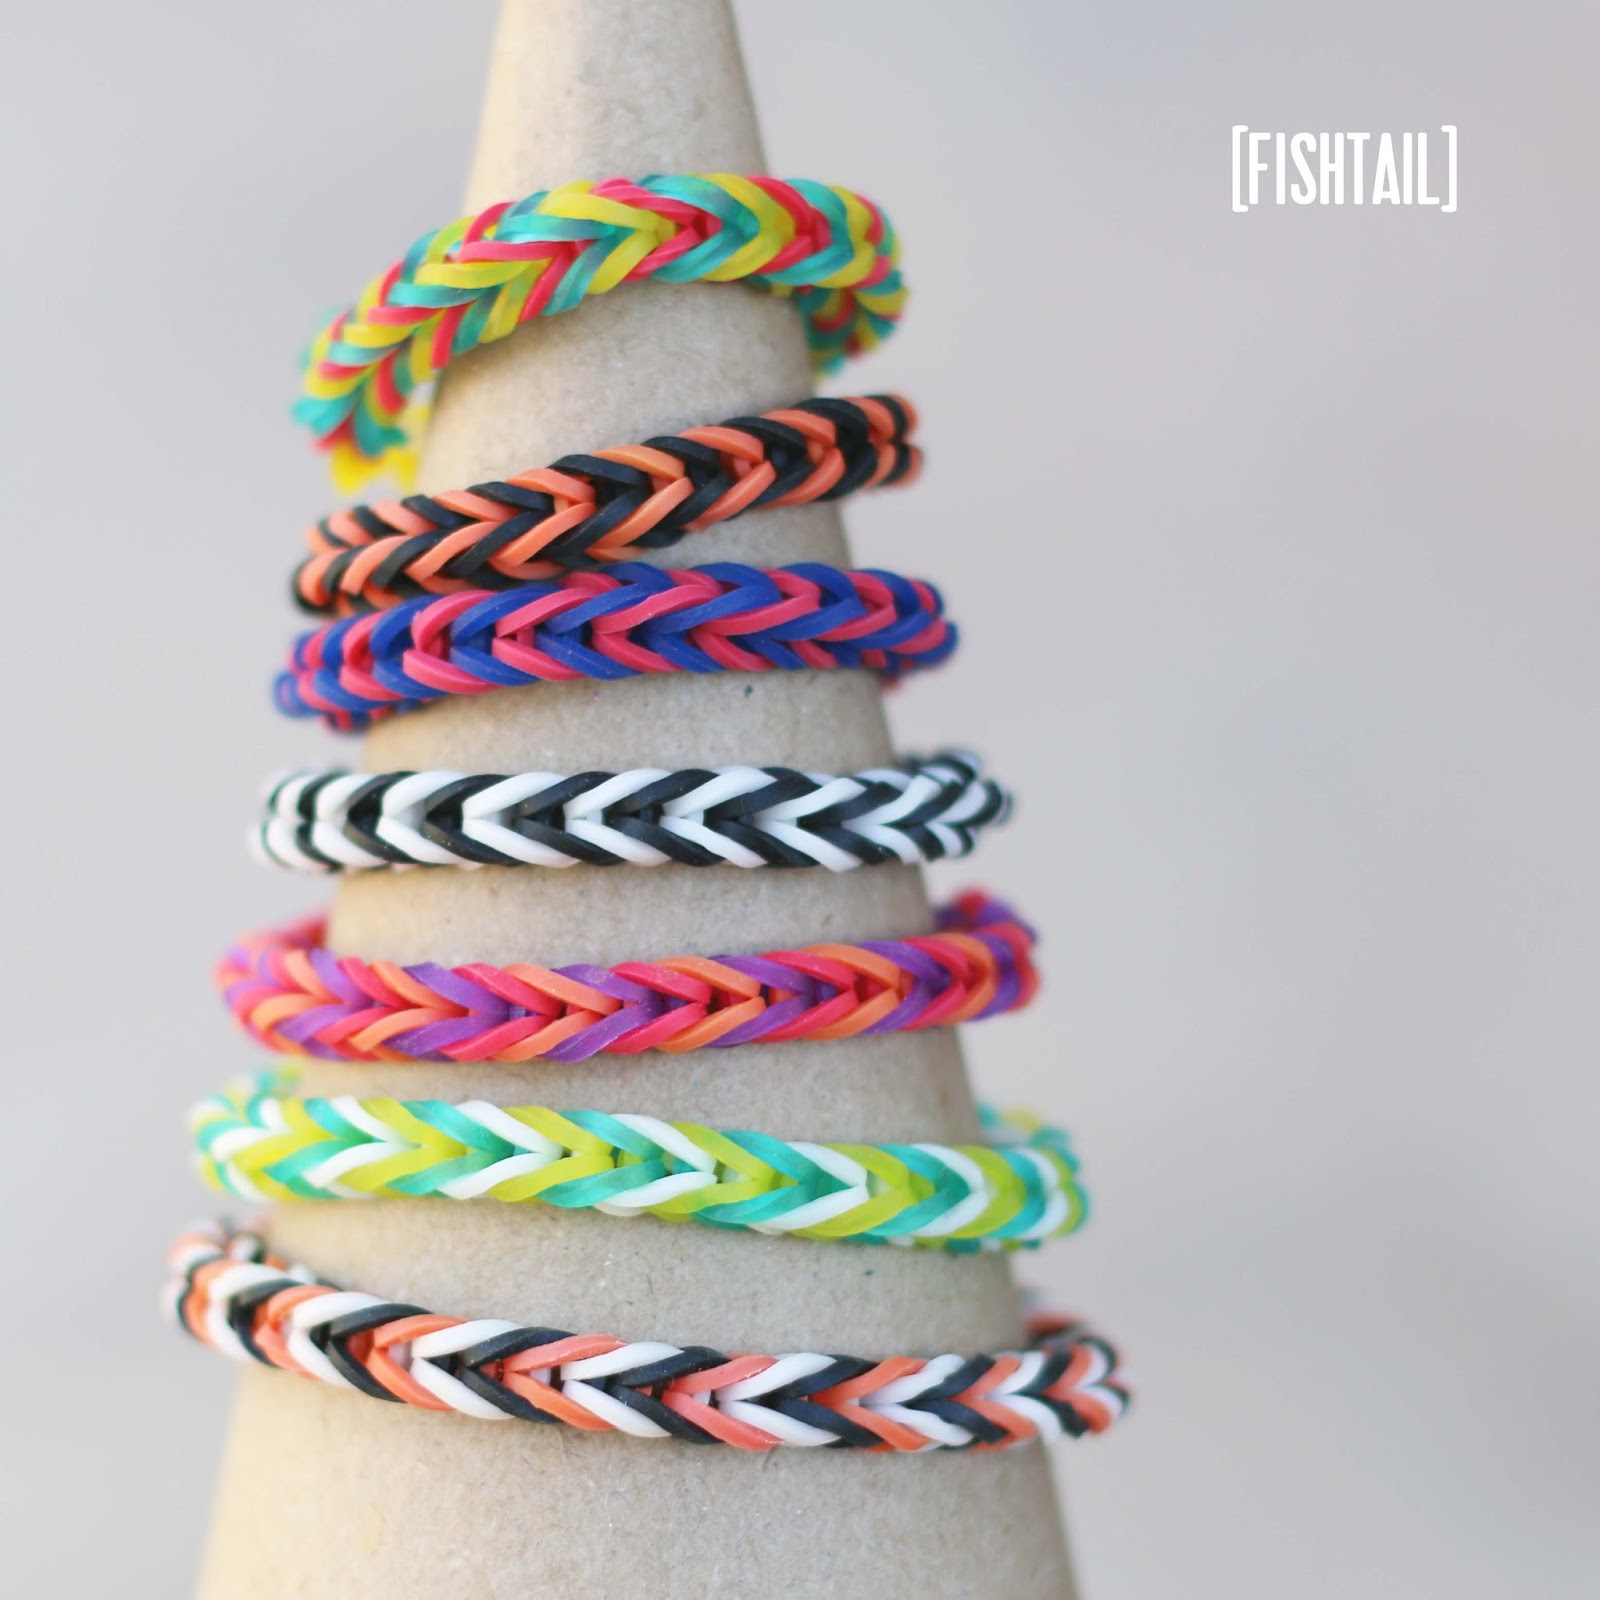 how to make a fishtail rubber band bracelet make rainbow loom bracelets a tutorial up 183